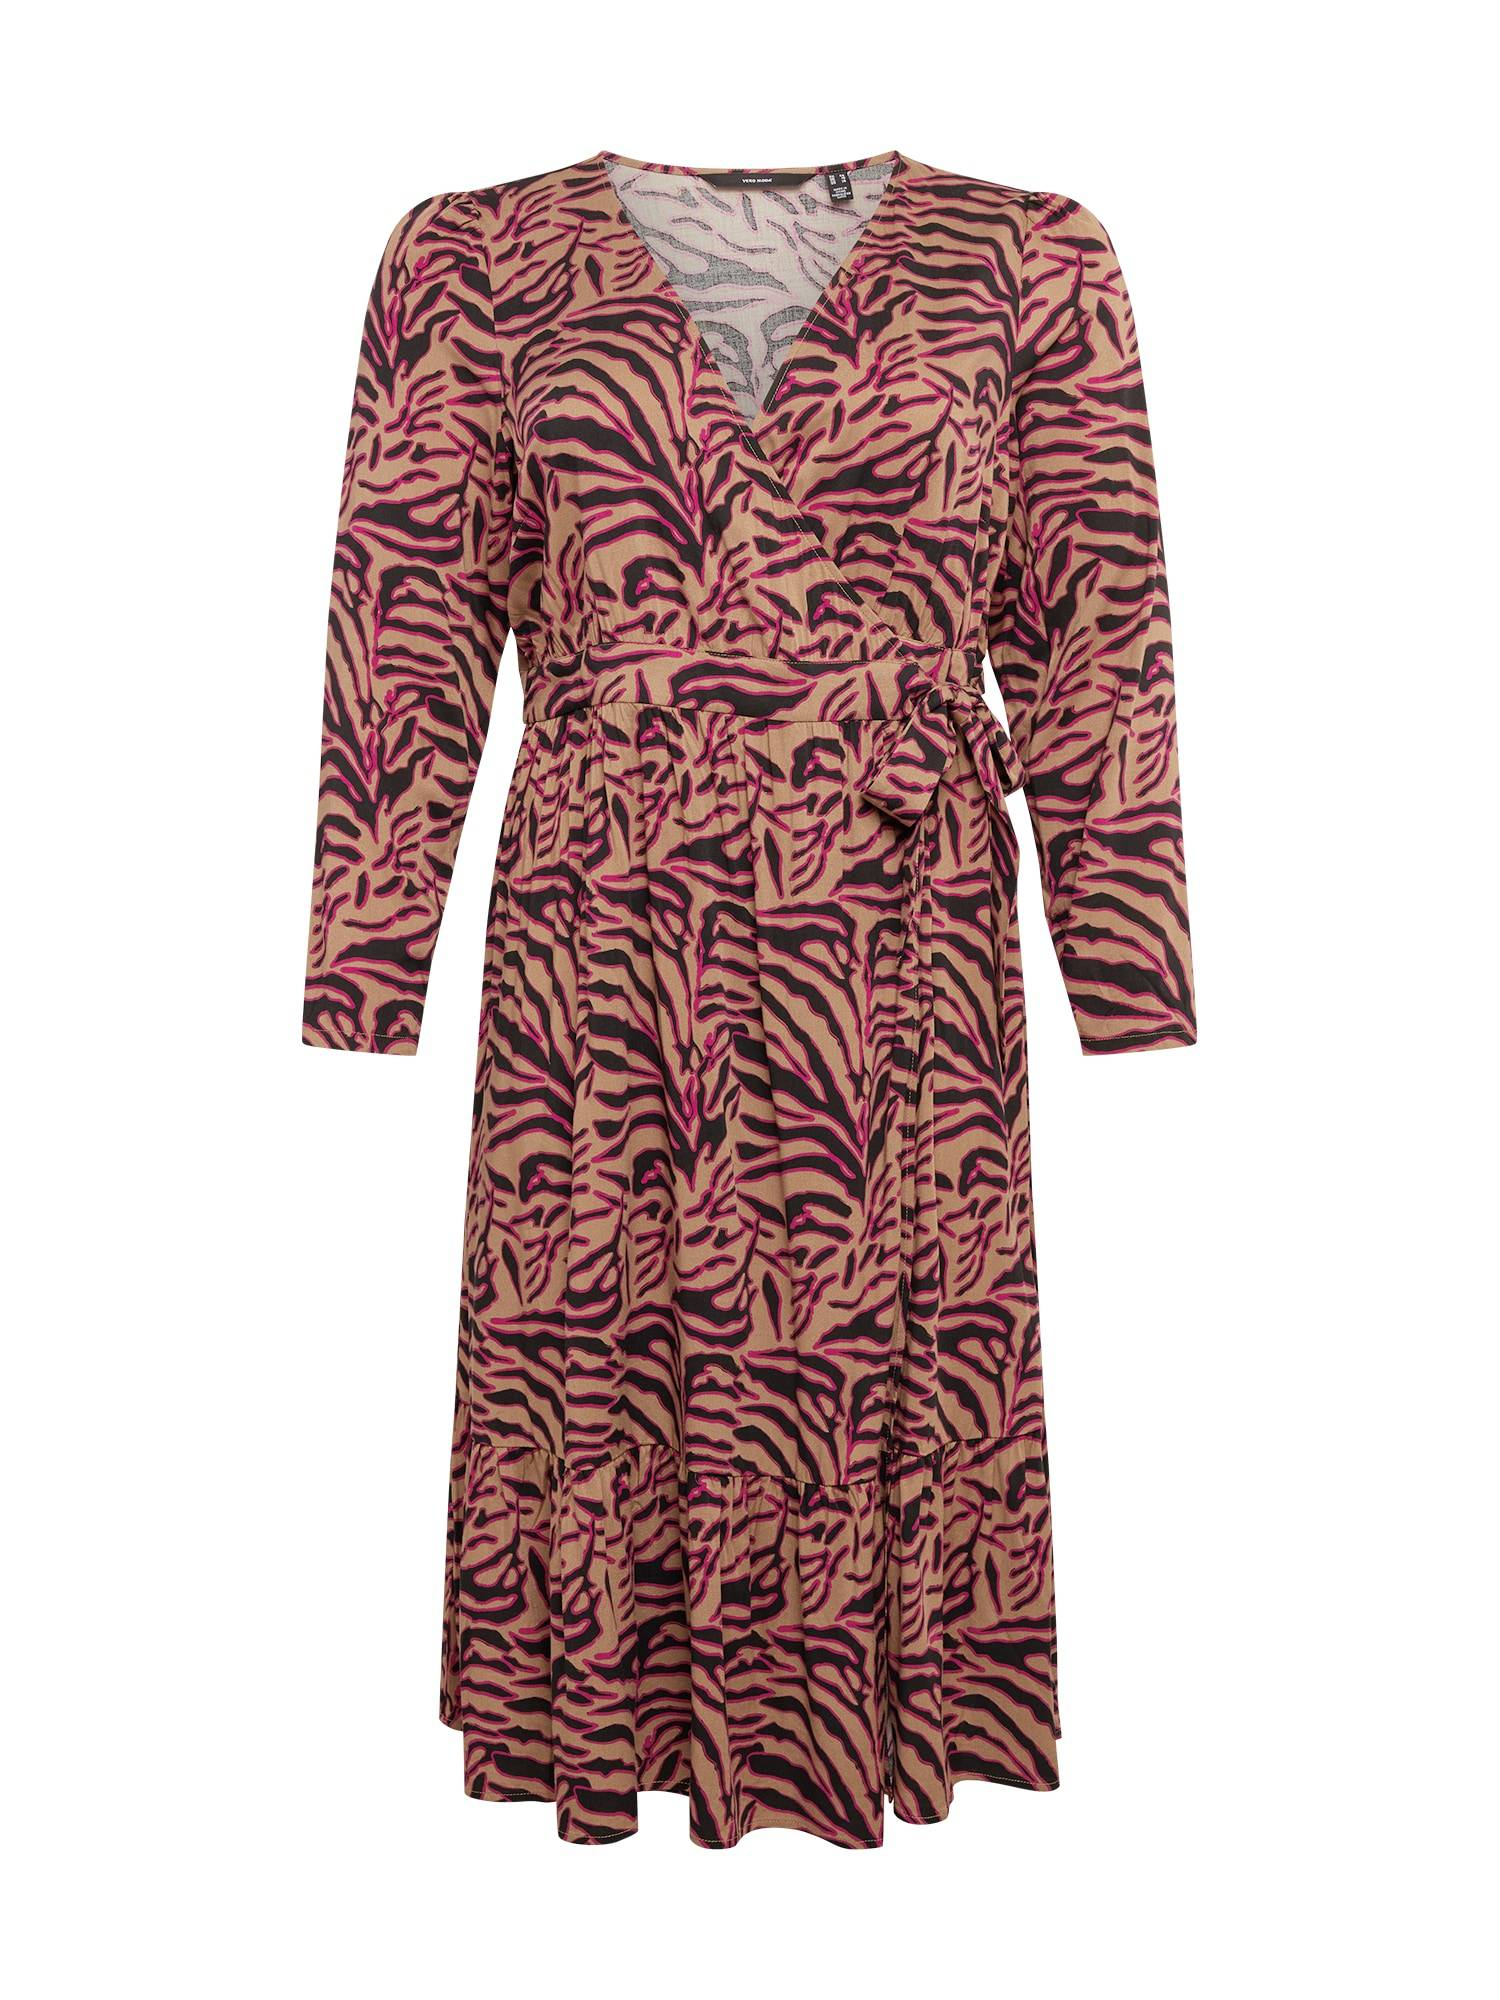 Vero Moda Curve Robe  - Rose - Taille: 42 - female